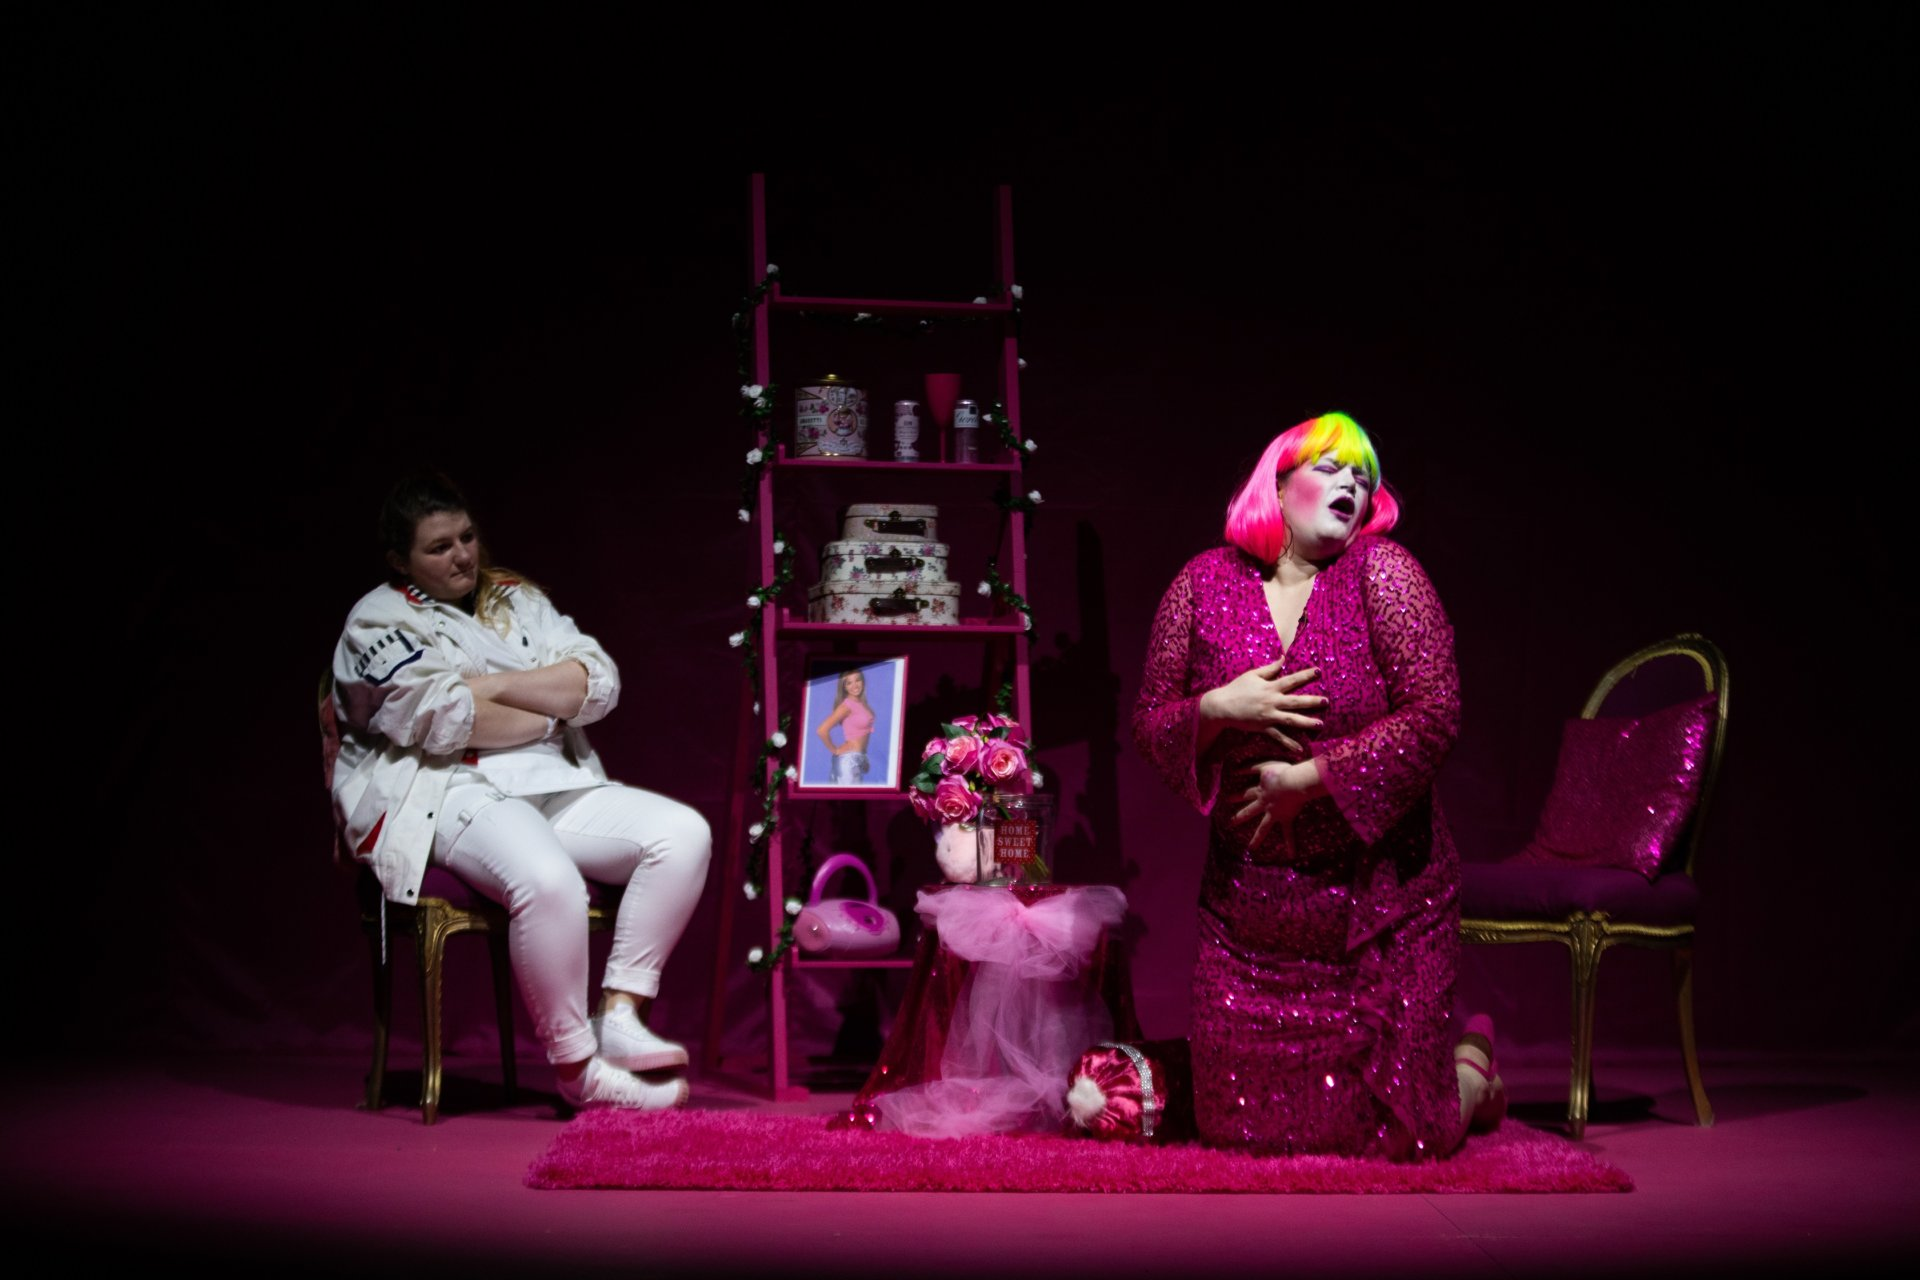 Two performers sit on stage surrounded by pink props. The performer on the right wears a pink sequin dress and pink wig while the performer to the left wears a white patterned jacket and trousers and sits with their arms folded. It's part of Into the New, the festival of contemporary performance at RCS